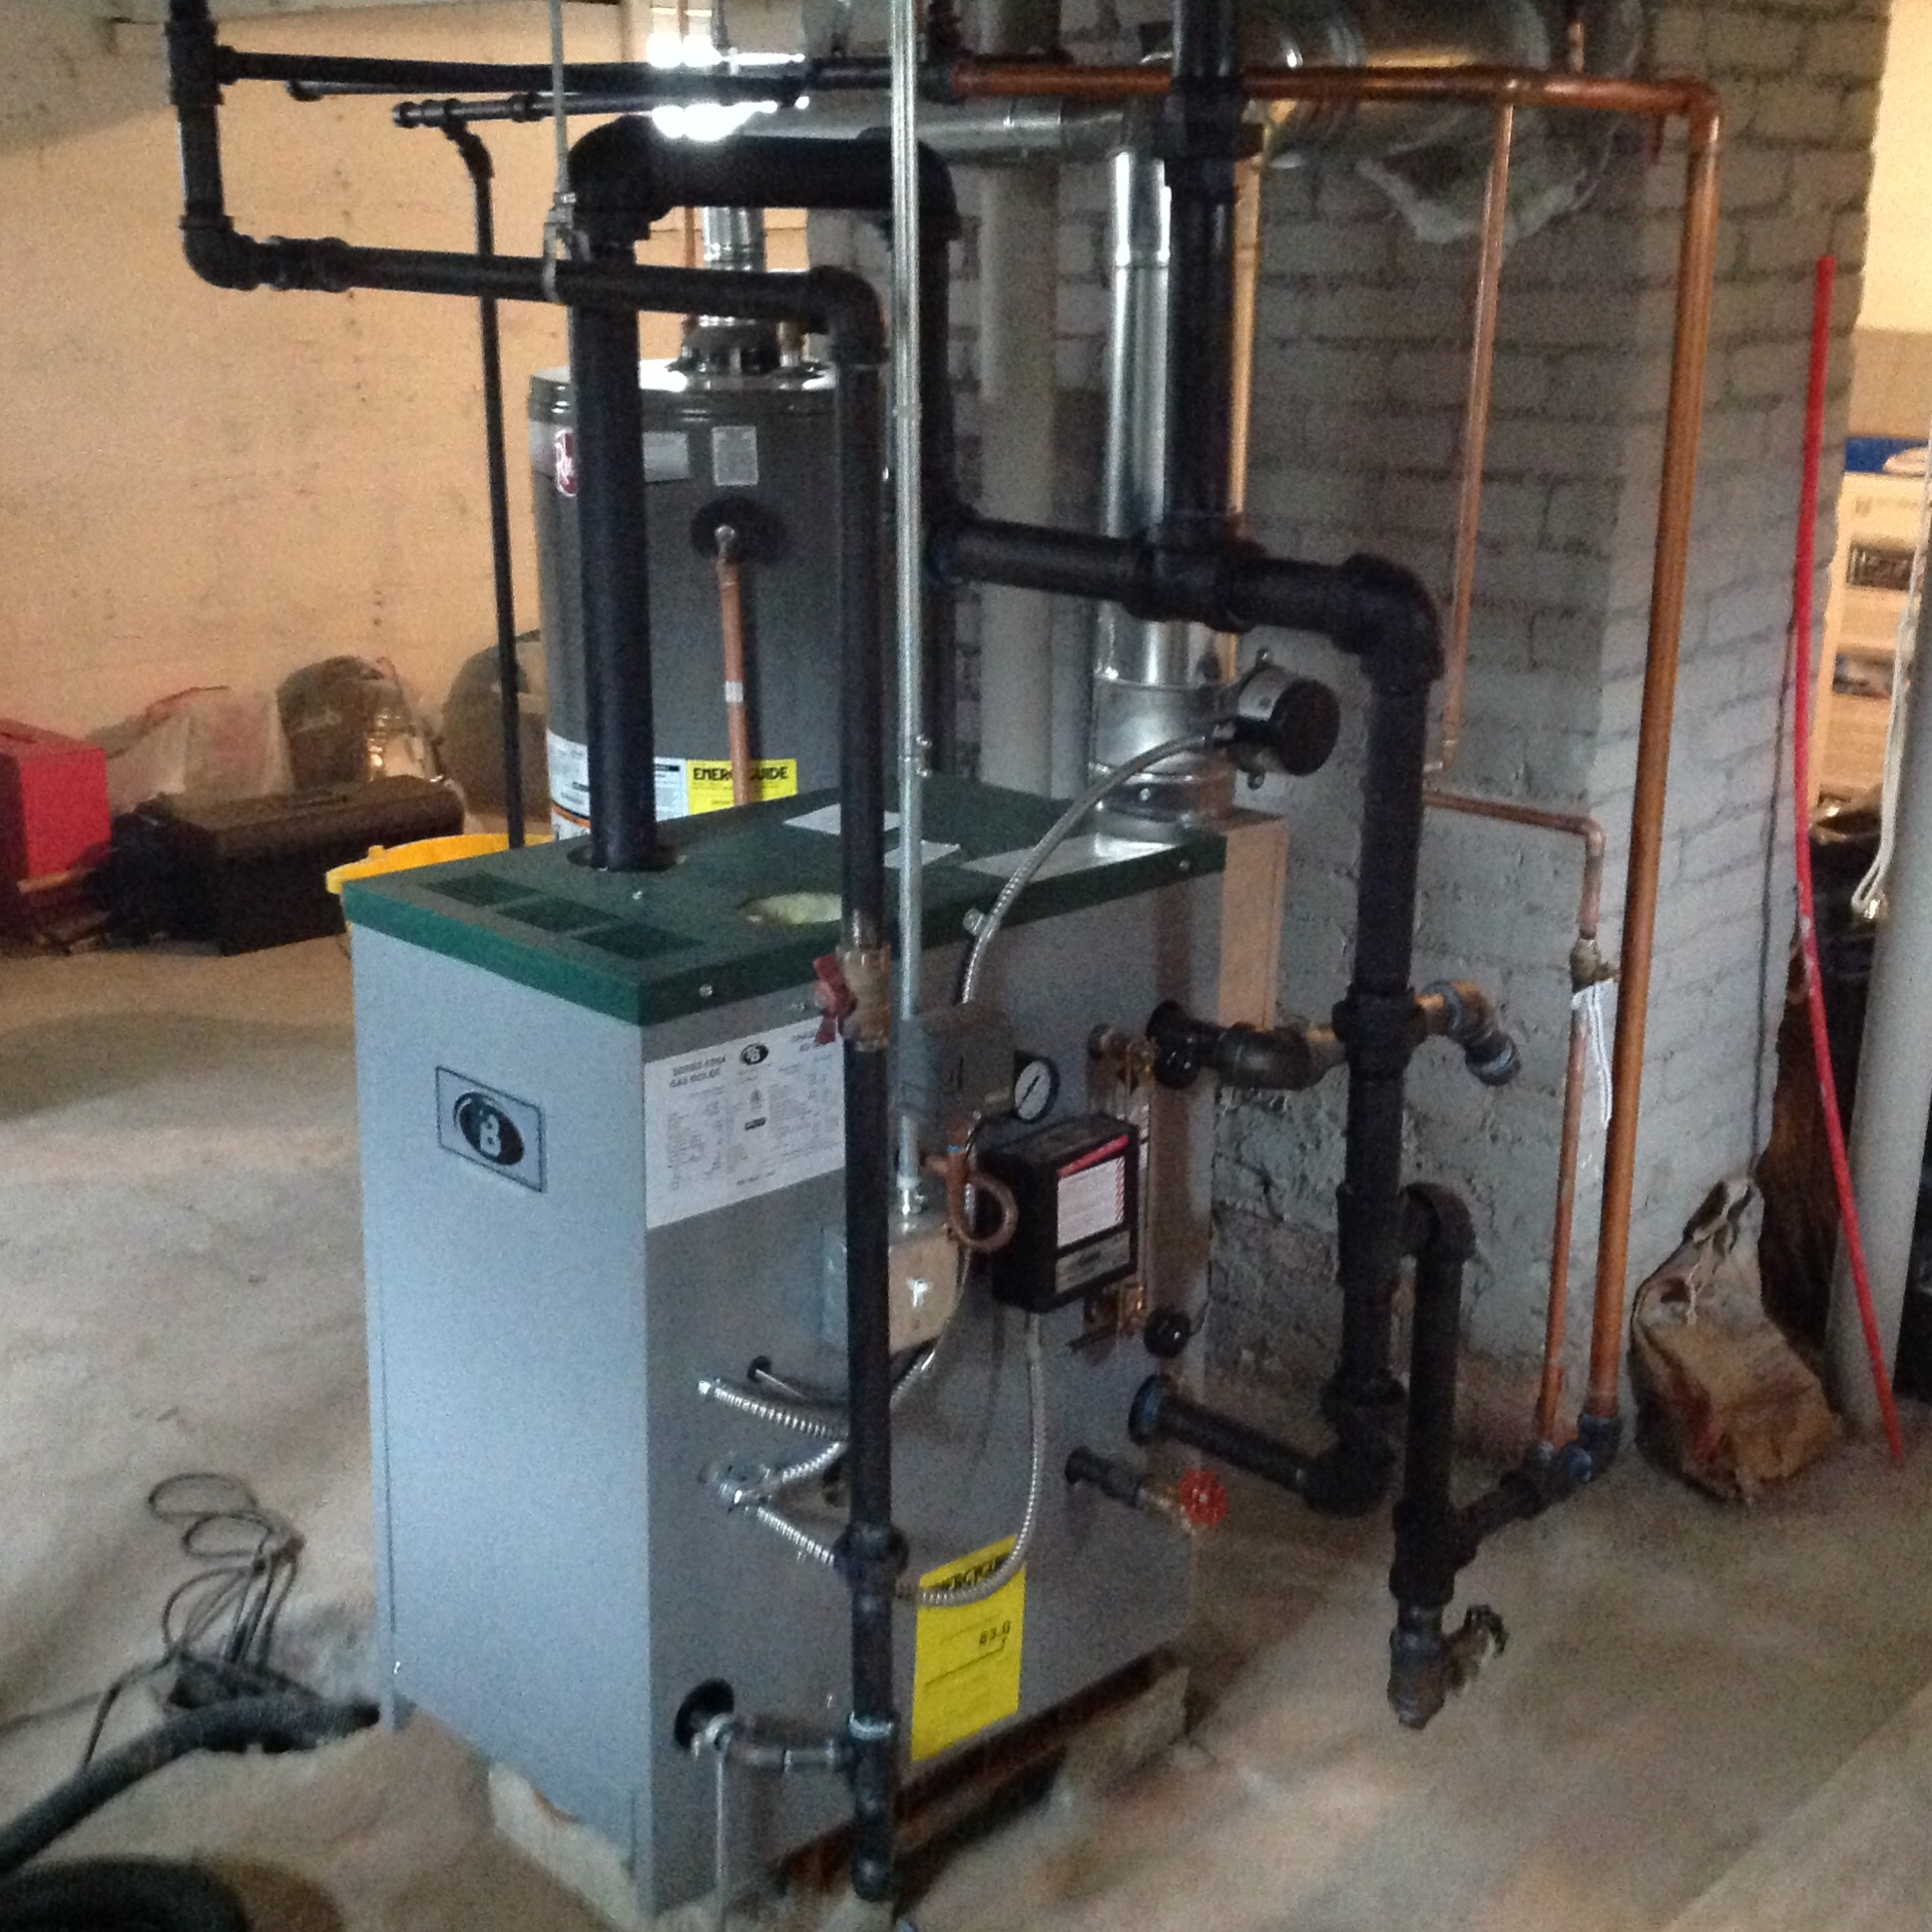 Third steam boiler in 18 years — Heating Help: The Wall